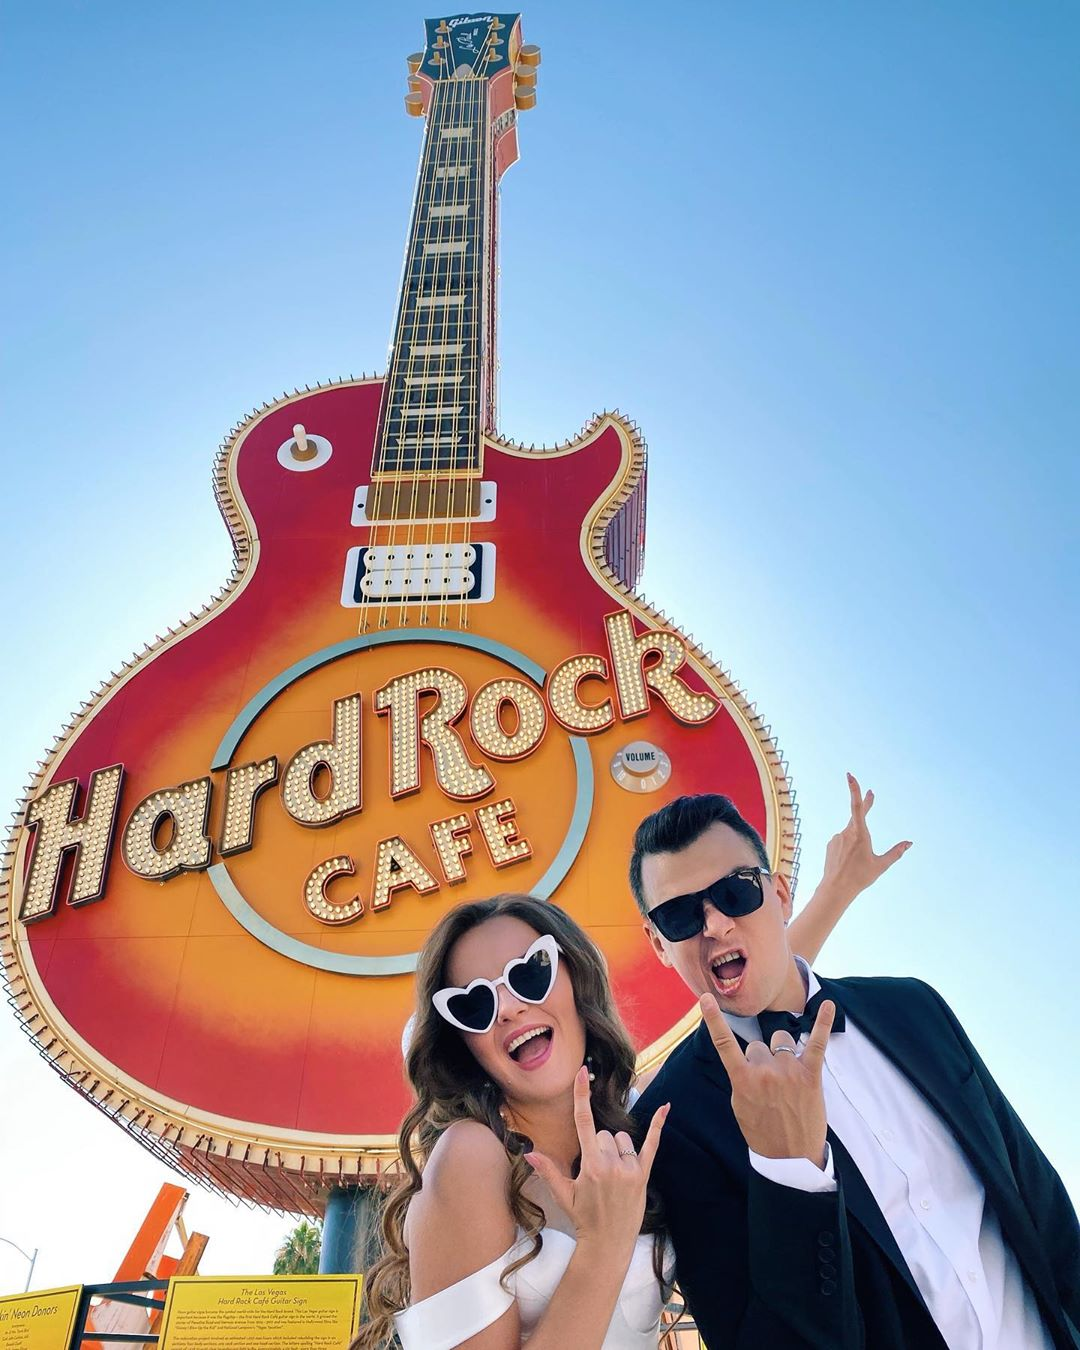 Photo of a Hard Rock guitar sign with a married couple wildly posing in front.